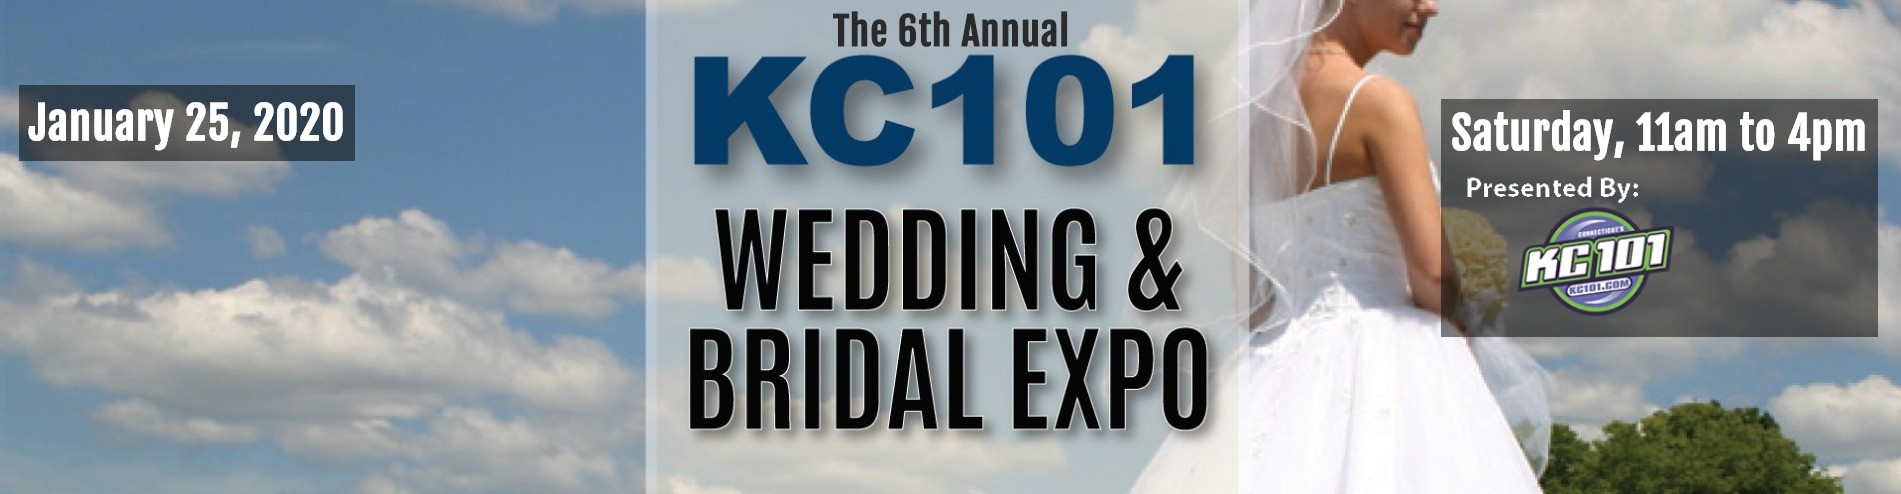 2020 KC101 Bridal & Wedding Expo at the Oakdale Theater in Wallingford, CT on Saturday 1/25/20